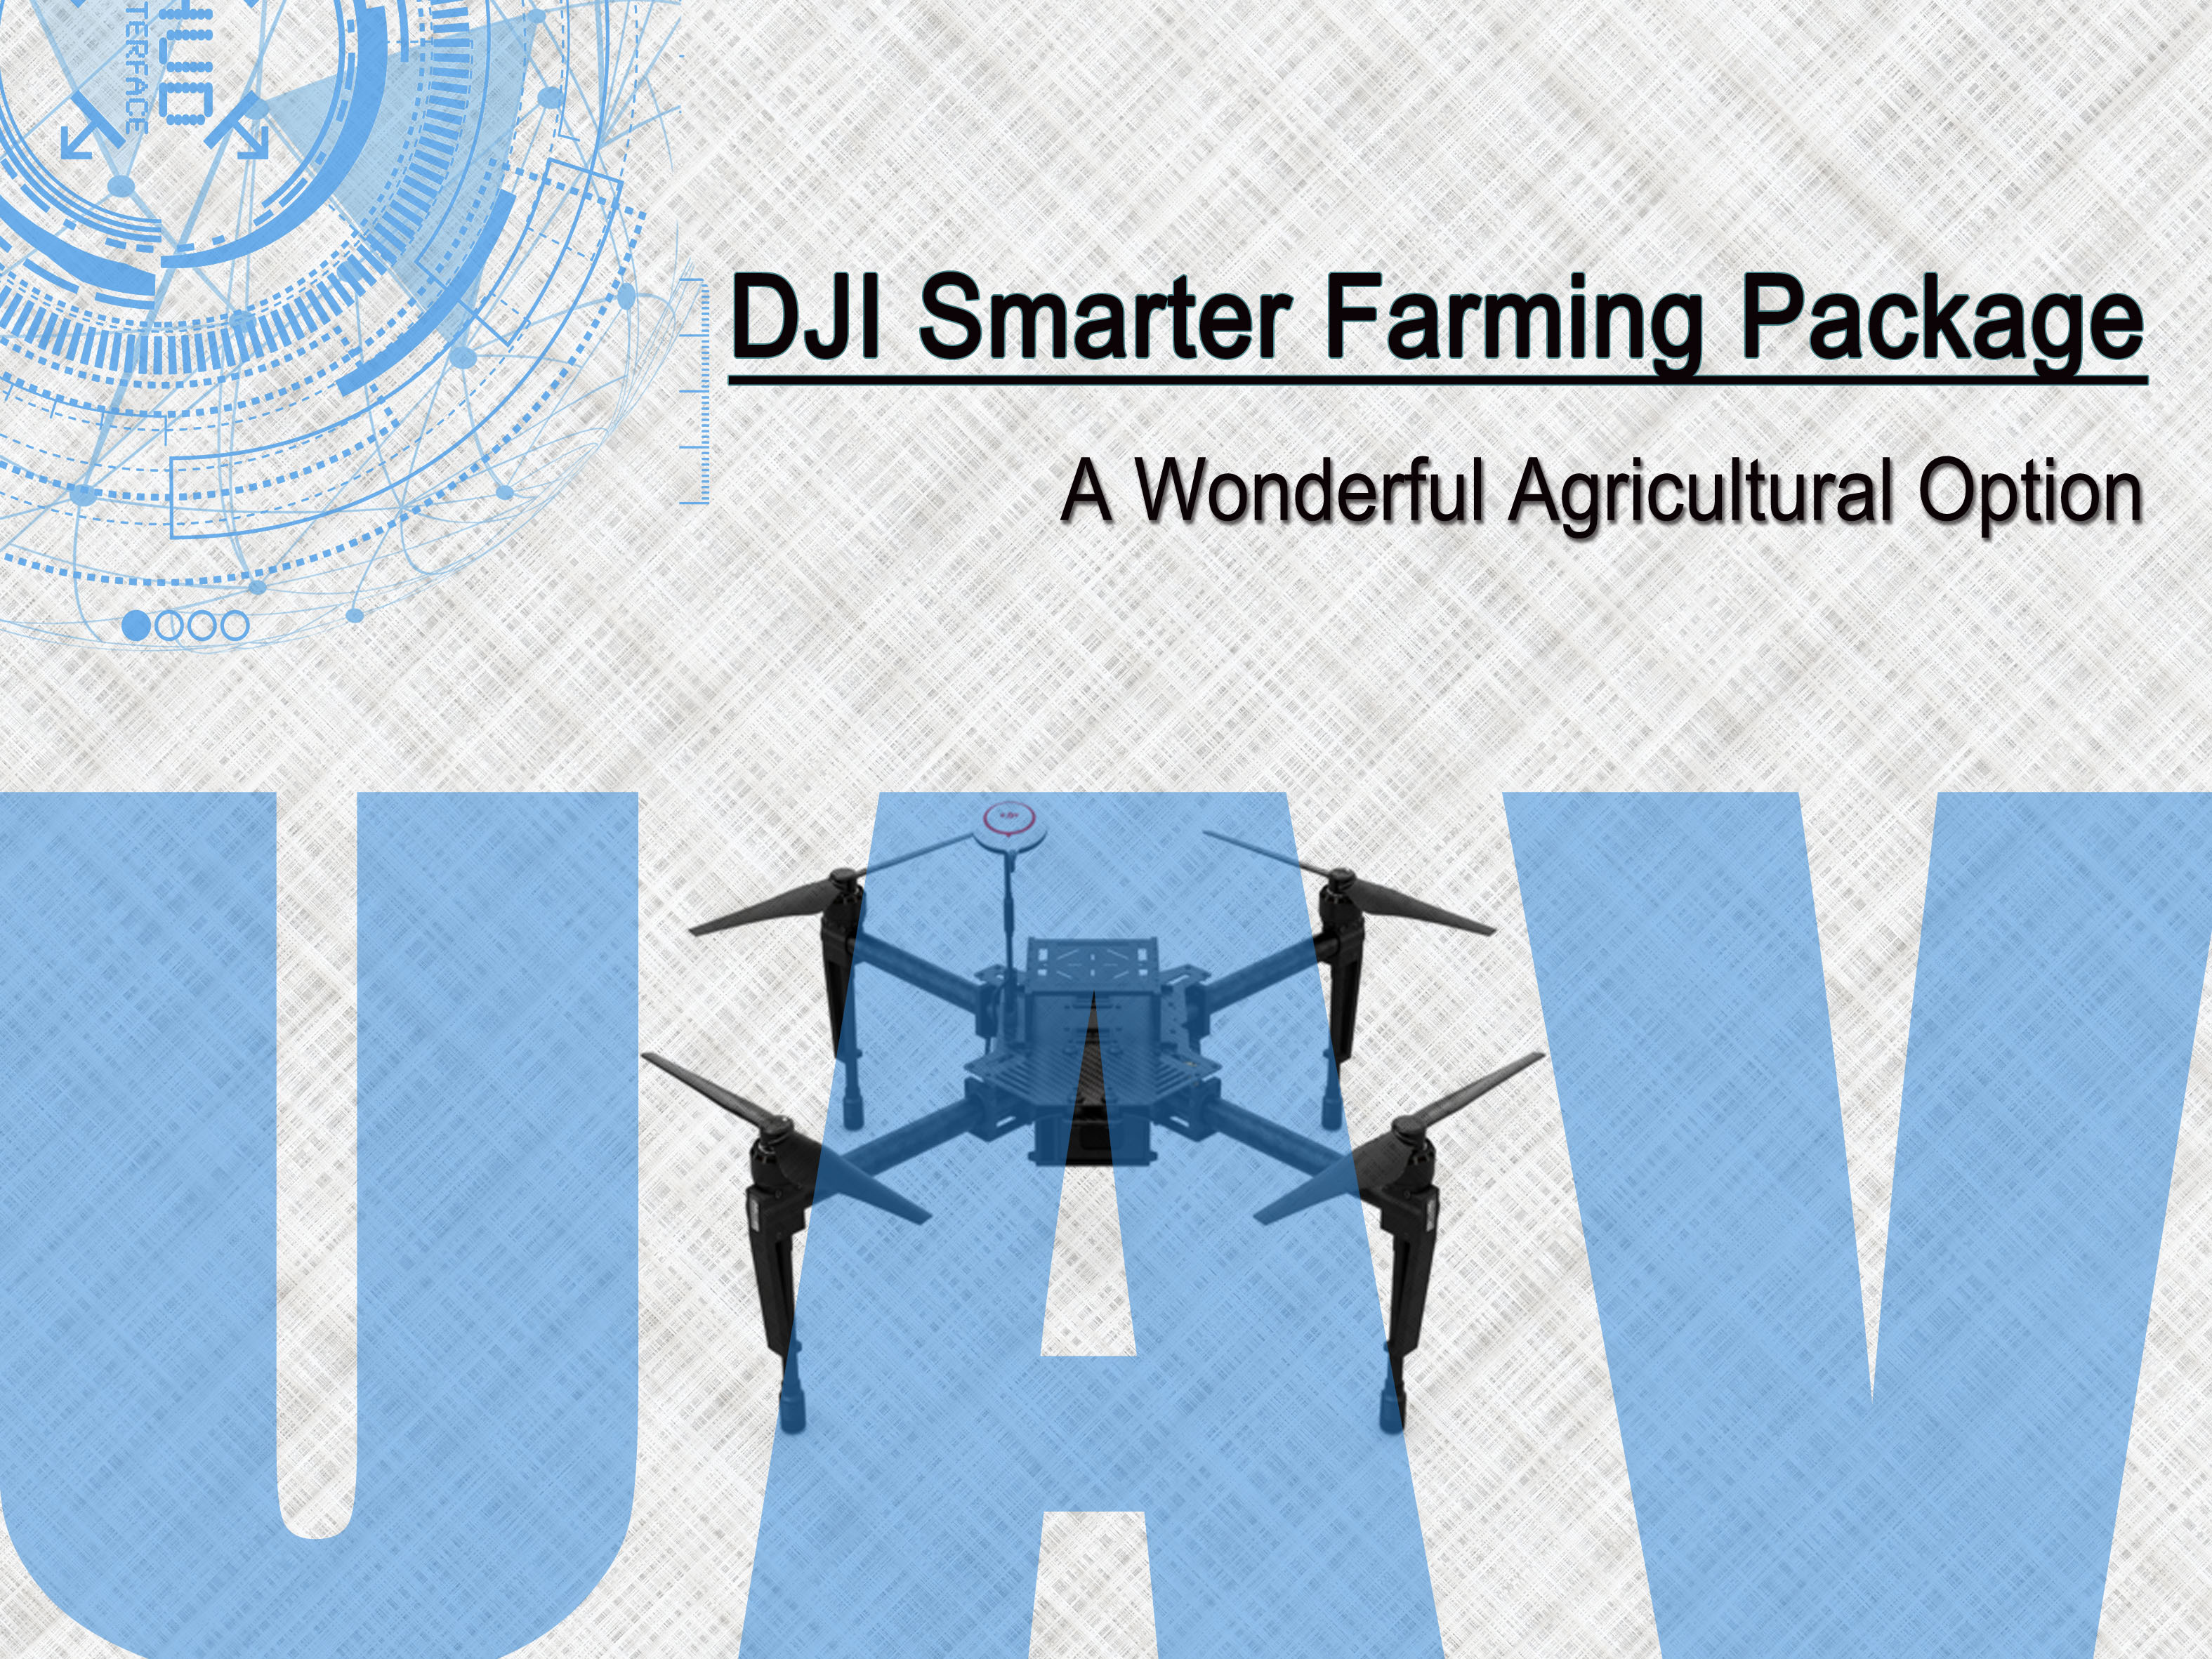 DJI Matric 100 Review - Wonderful Agricultural Option